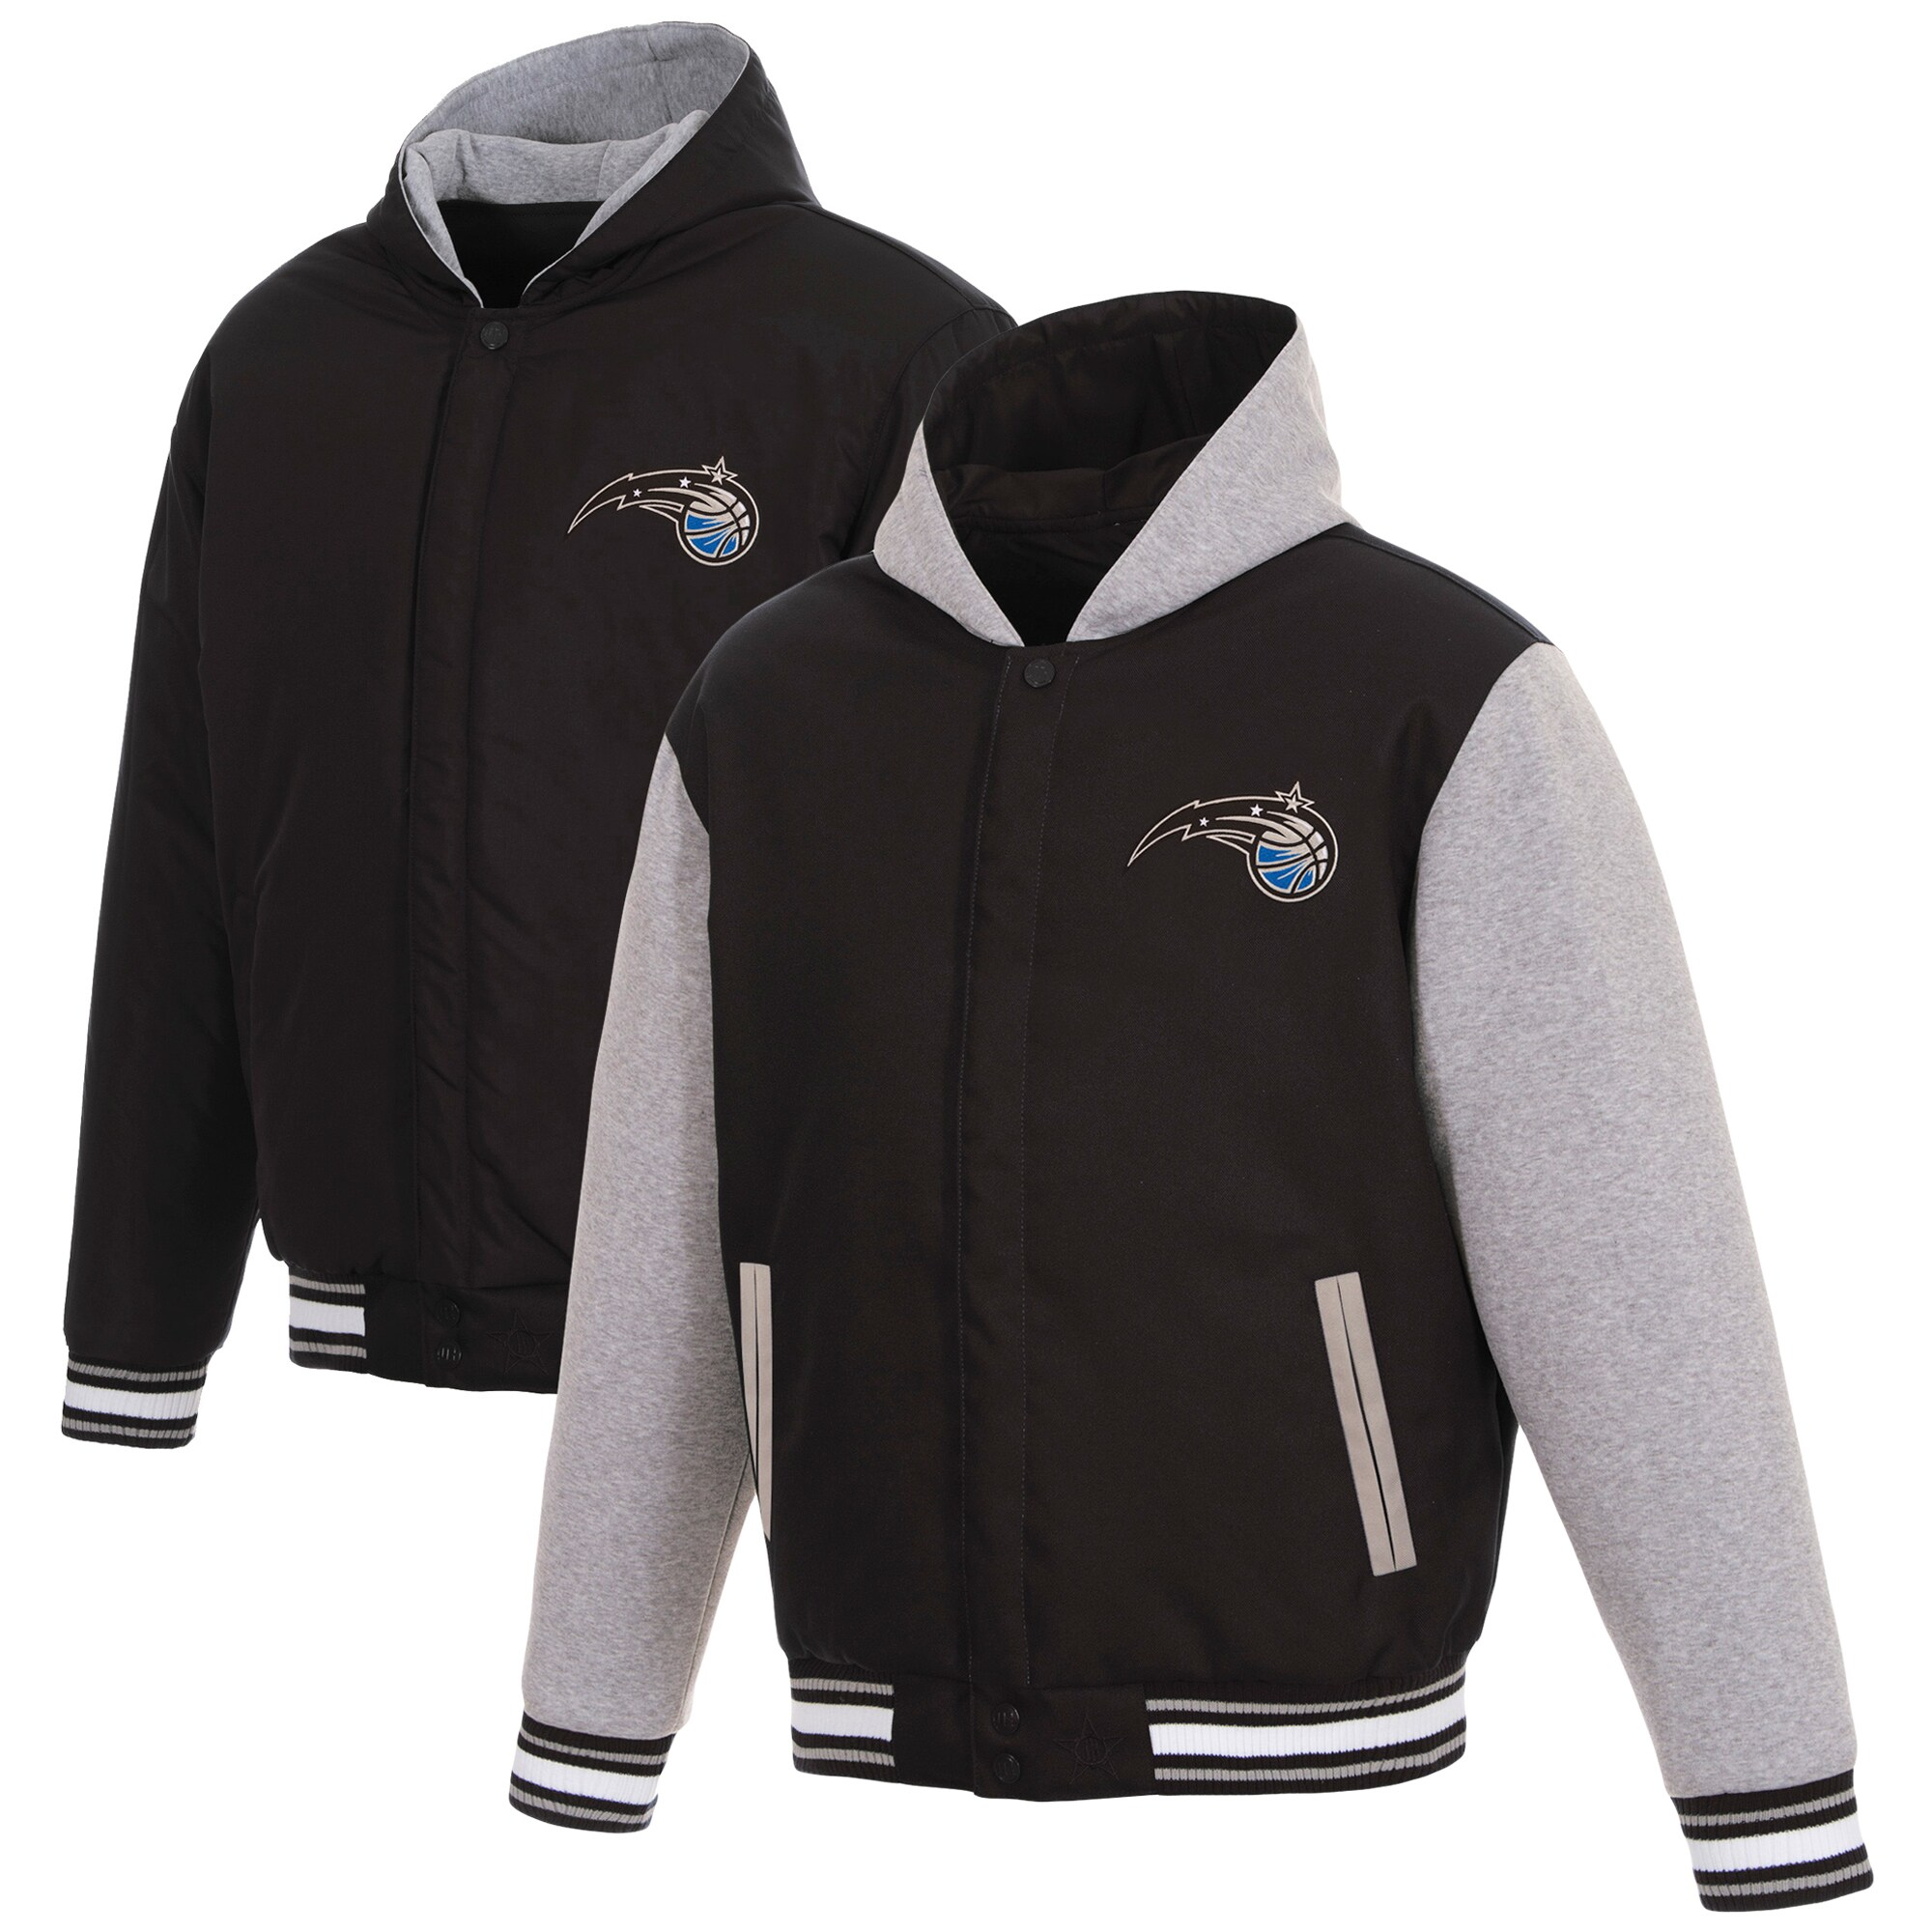 Orlando Magic JH Design Reversible Poly-Twill Hooded Jacket with Fleece Sleeves - Black/Gray